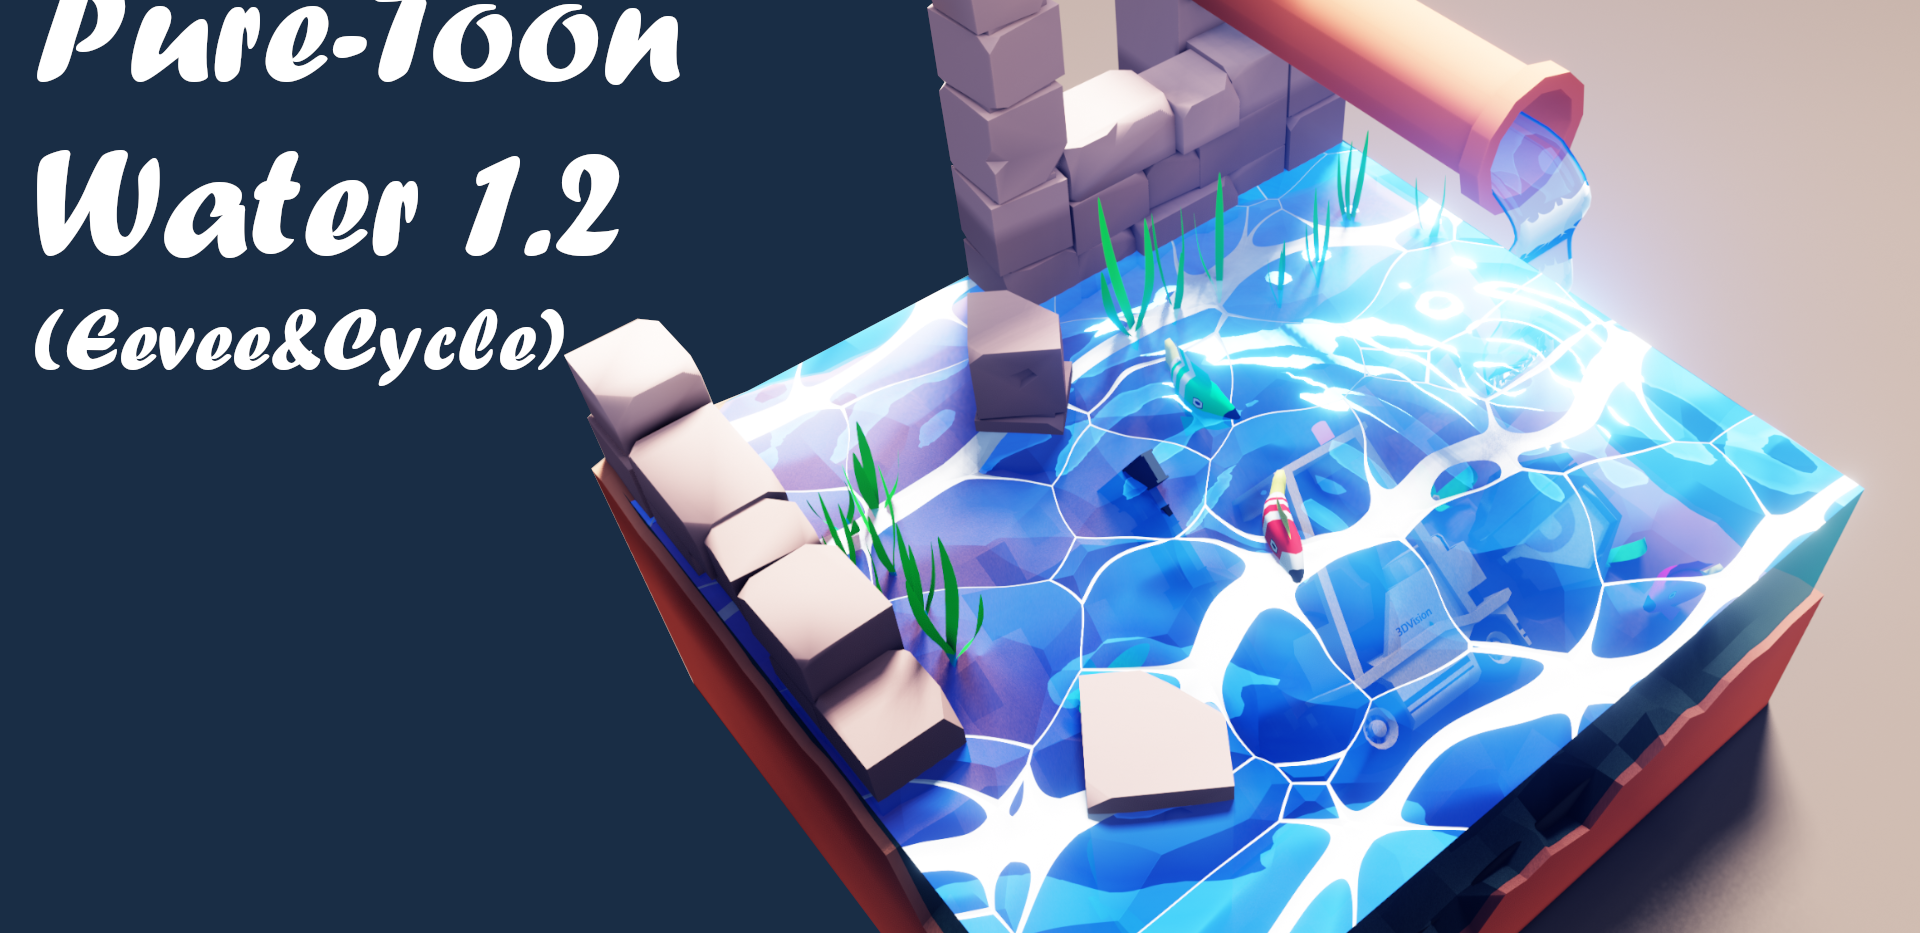 Pure-Toon Water 1.2